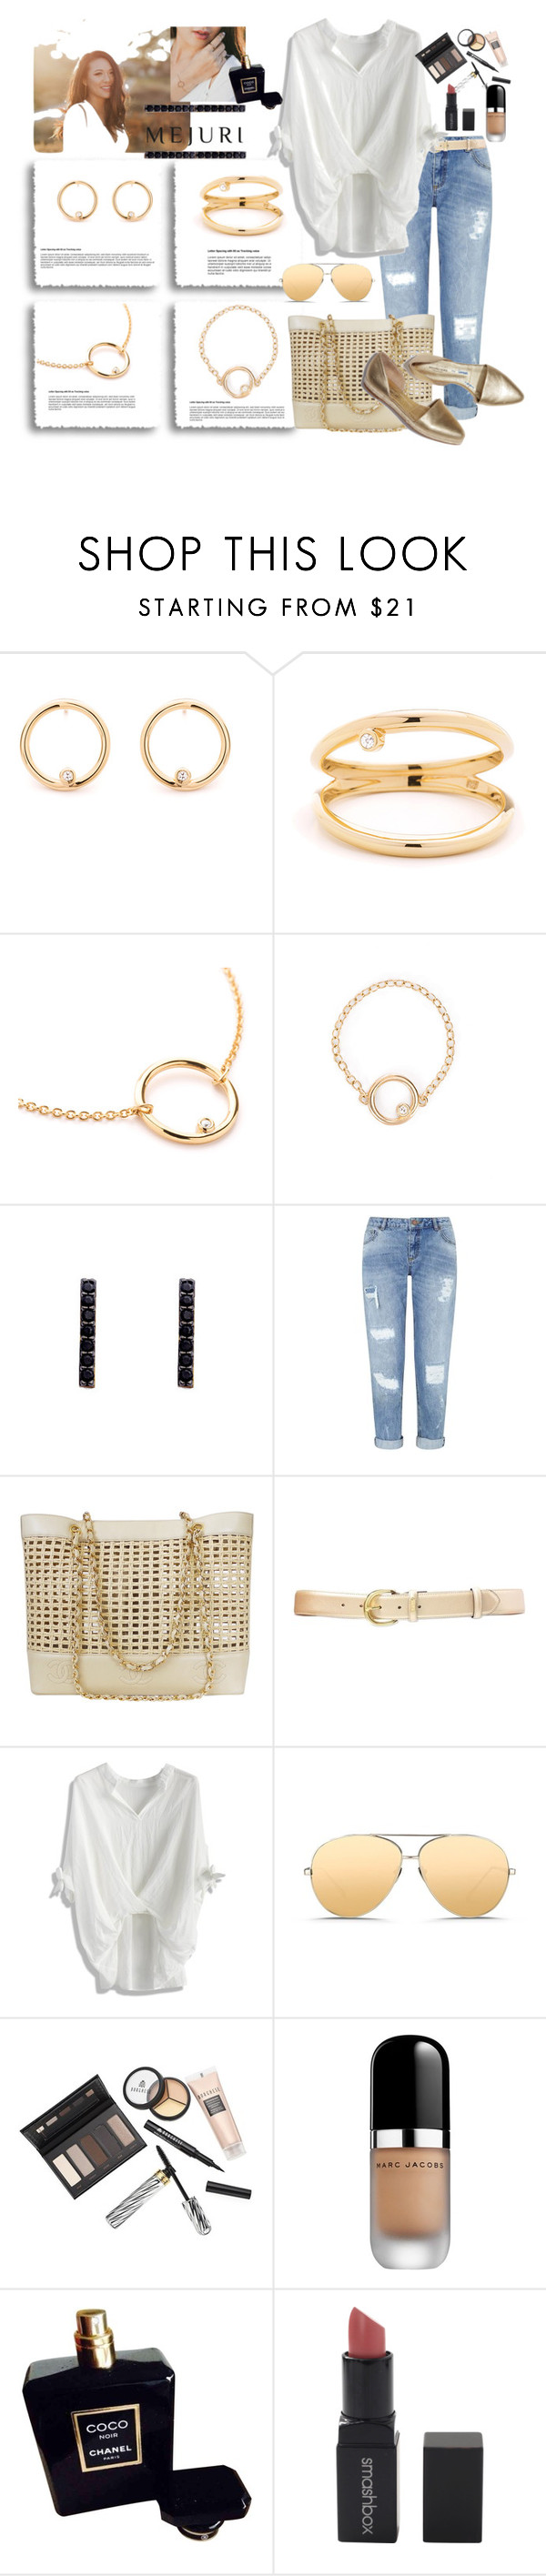 """jenchaexmejuri"" by marionmeyer ❤ liked on Polyvore featuring Miss Selfridge, Chanel, Lauren Ralph Lauren, Chicwish, Linda Farrow, Borghese, Marc Jacobs, Smashbox, contestentry and jenchaexmejuri"